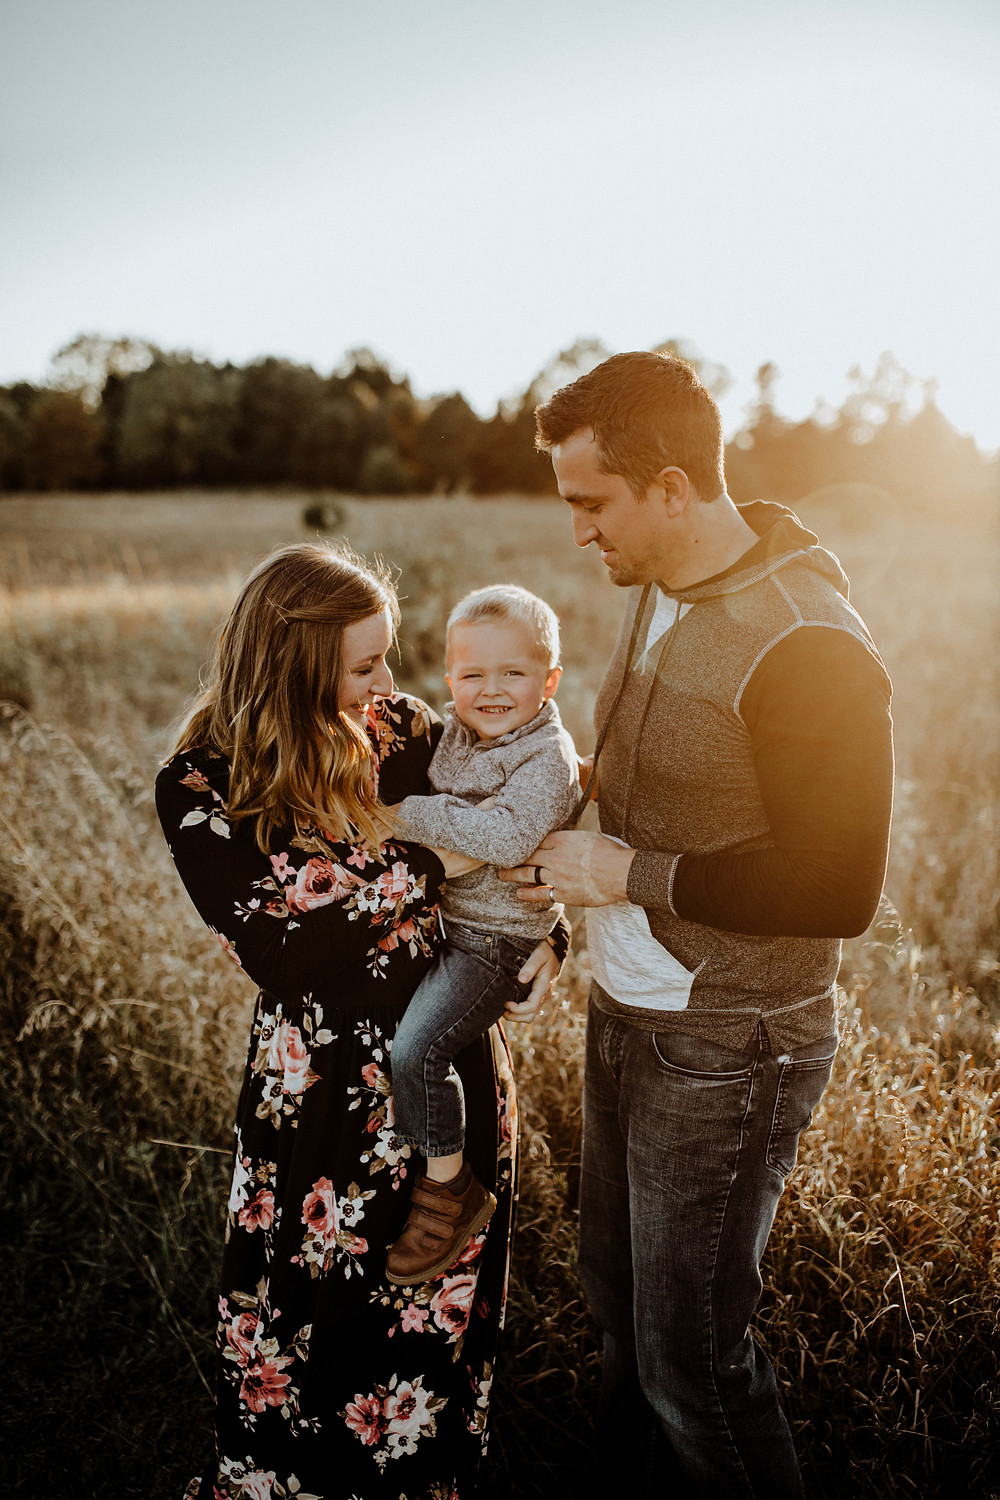 fall family photo in a field - taken by family photographer Little Blue Bird Photography in Manitou Beach, Michigan